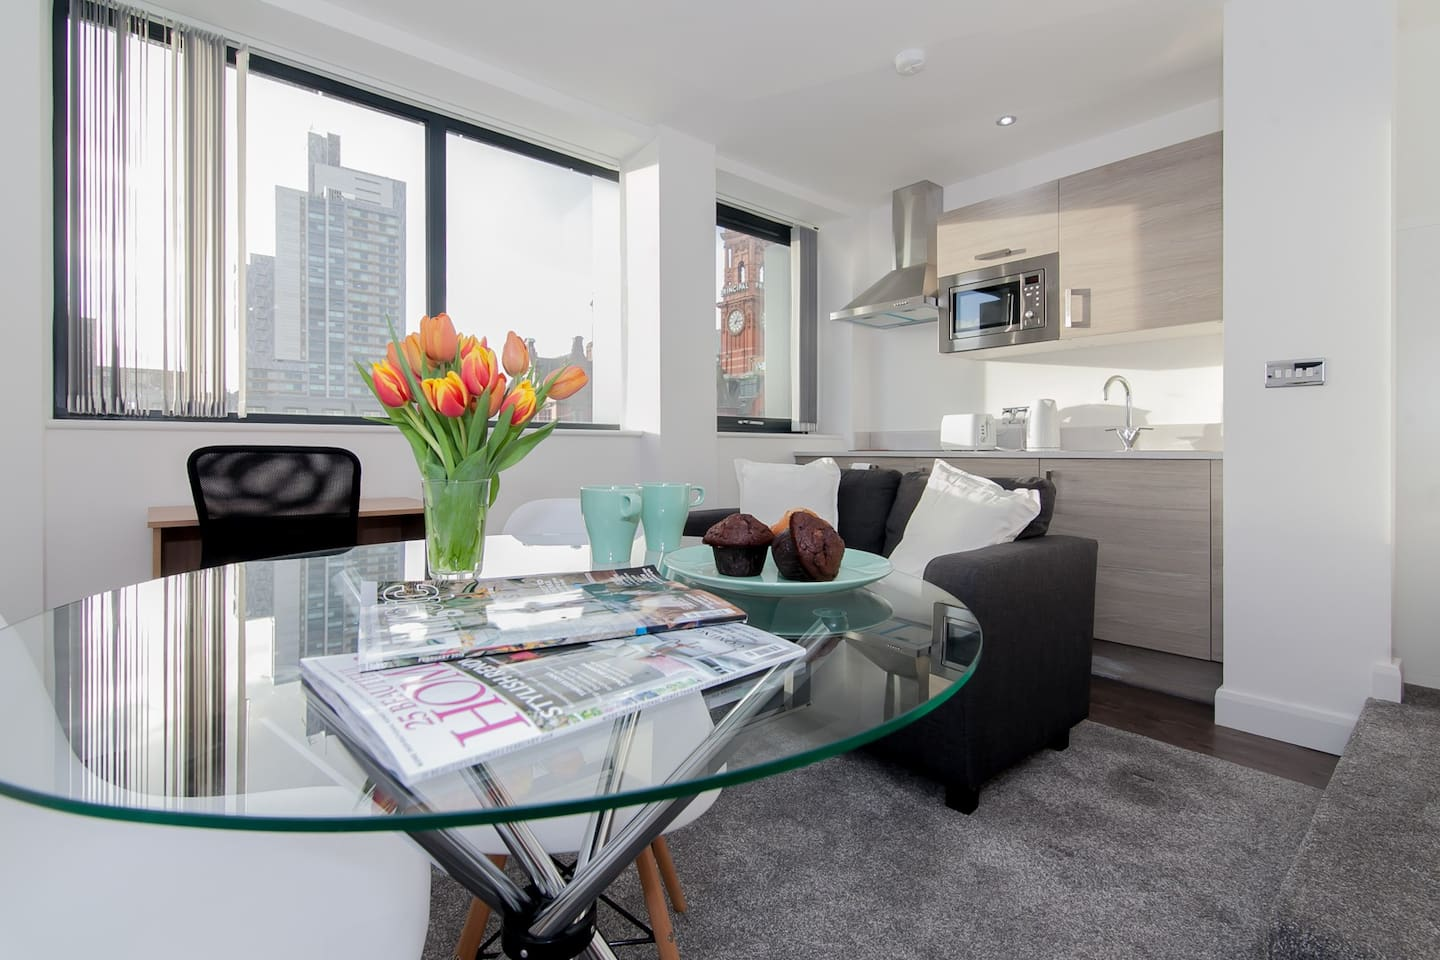 Beautiful Studio Apartment in Central Manchester - Apartments for ...